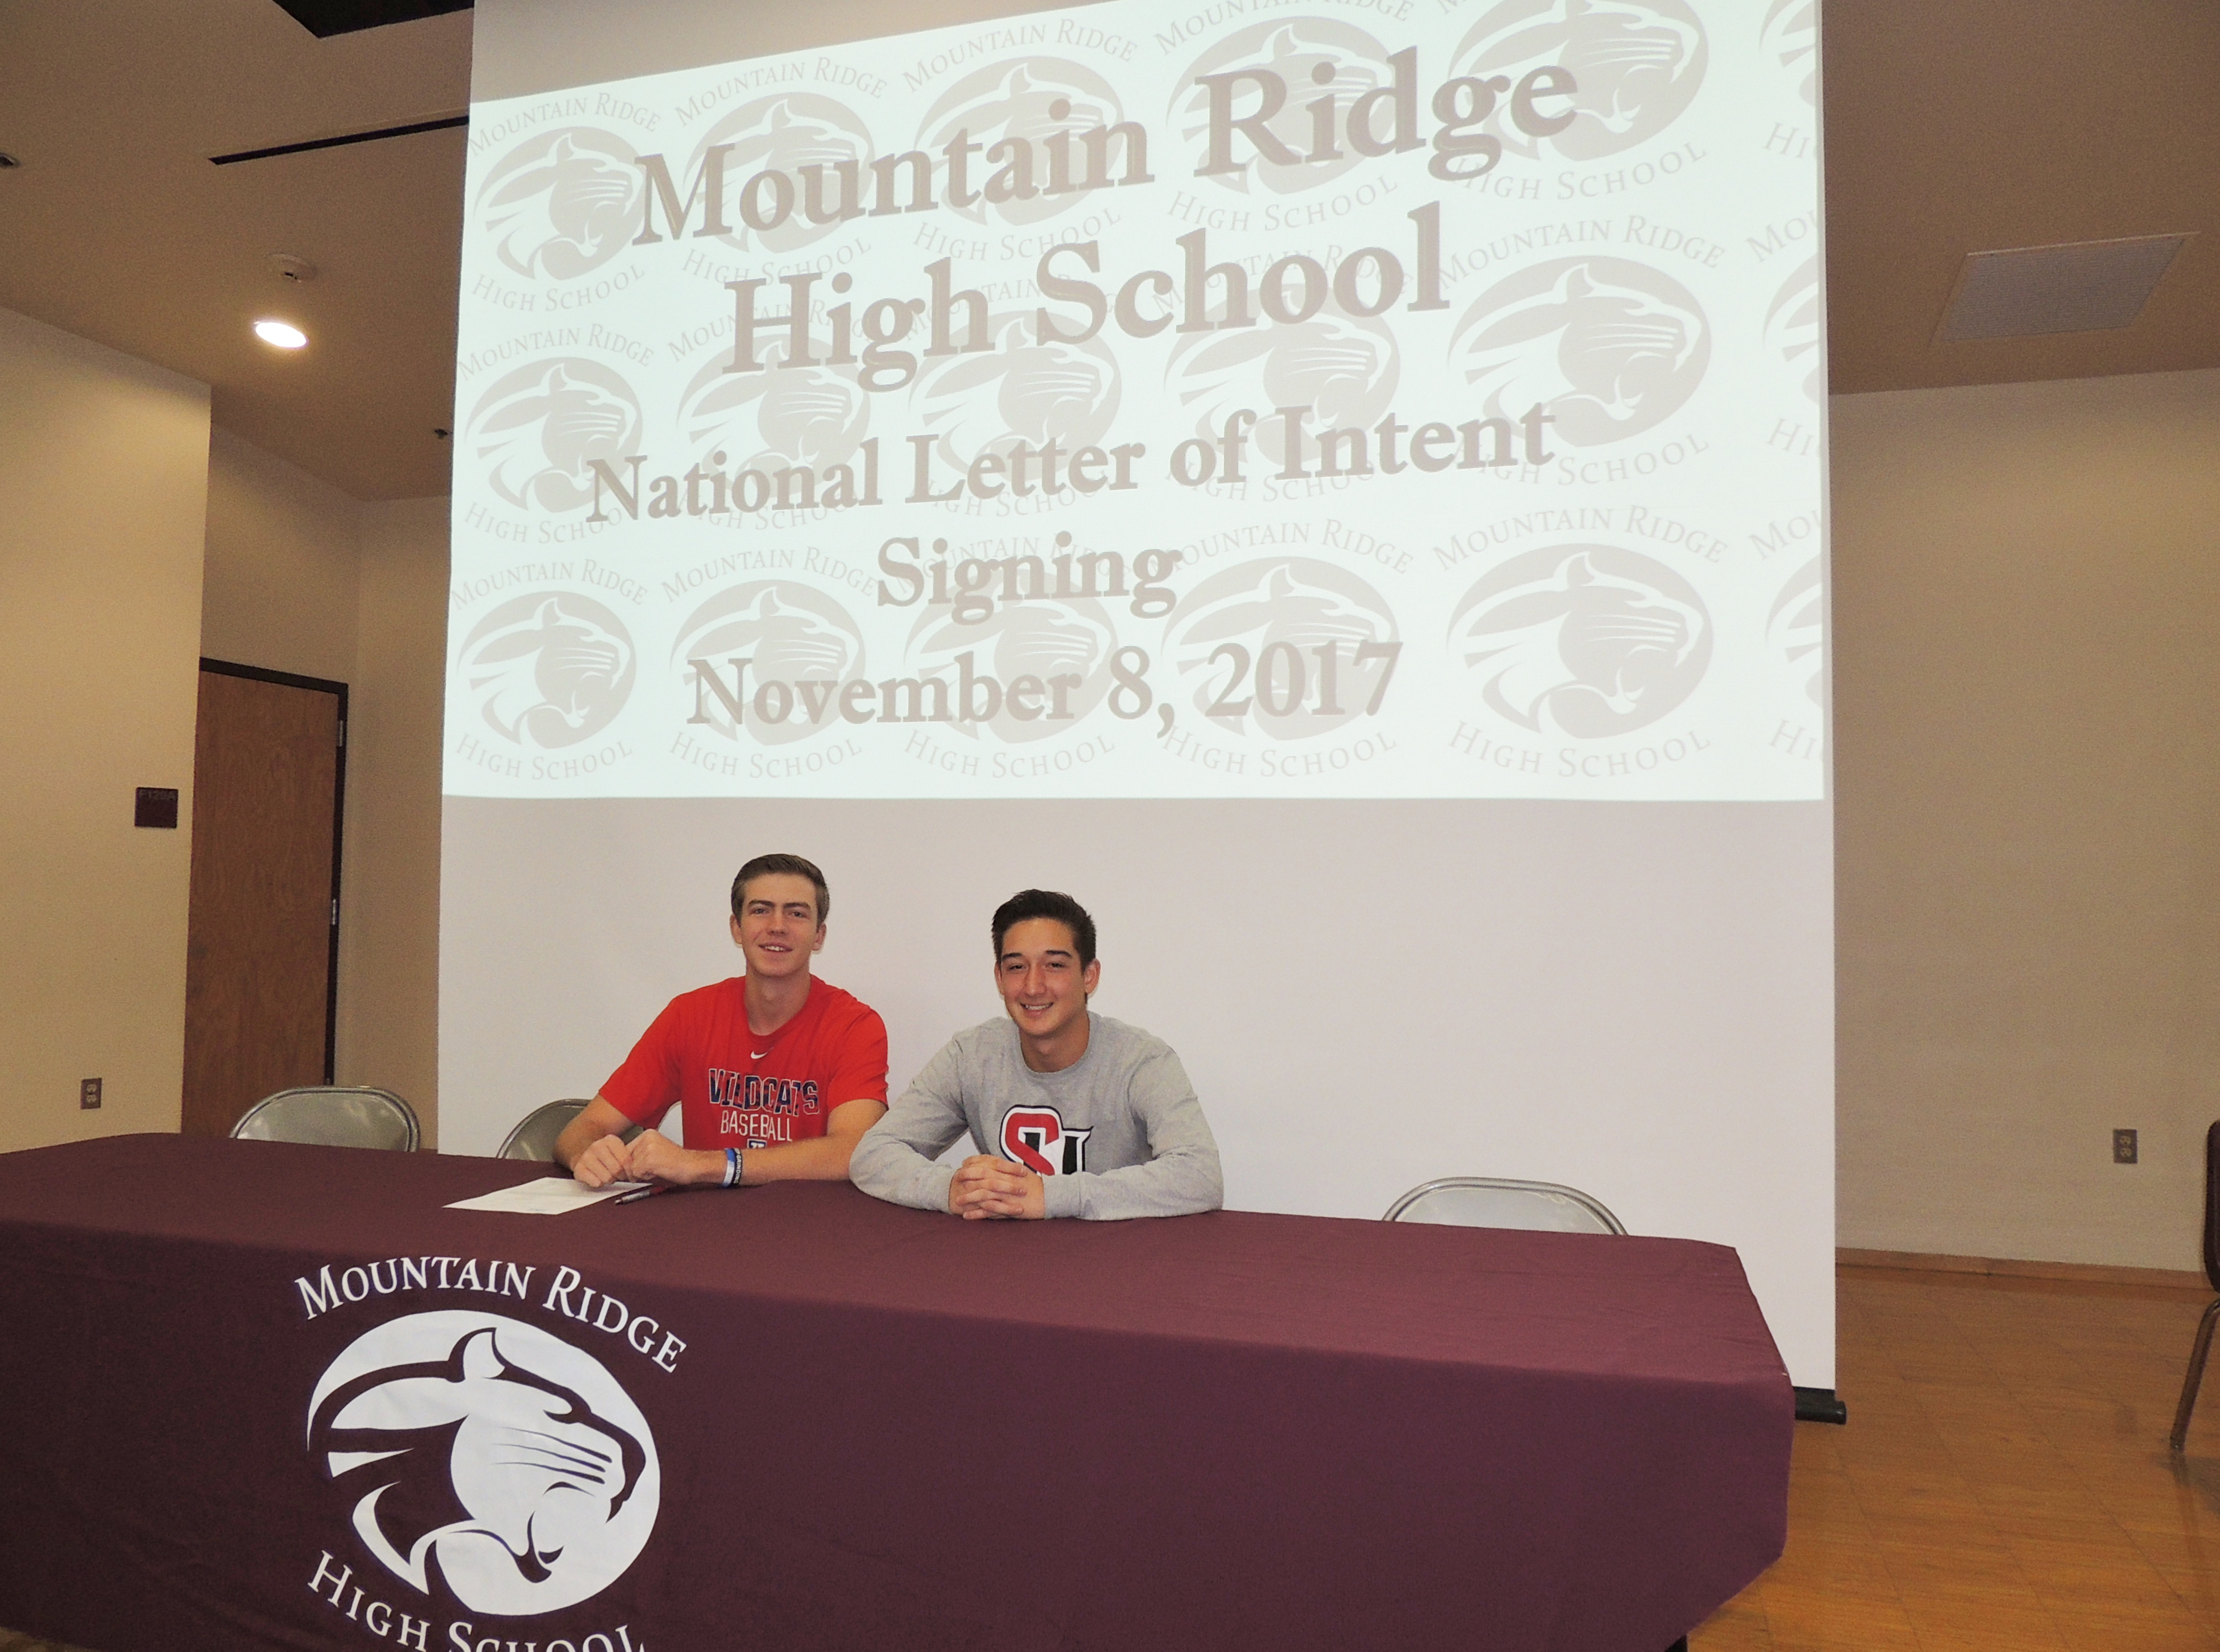 National Letter of Intent Signing November 8th, 2017